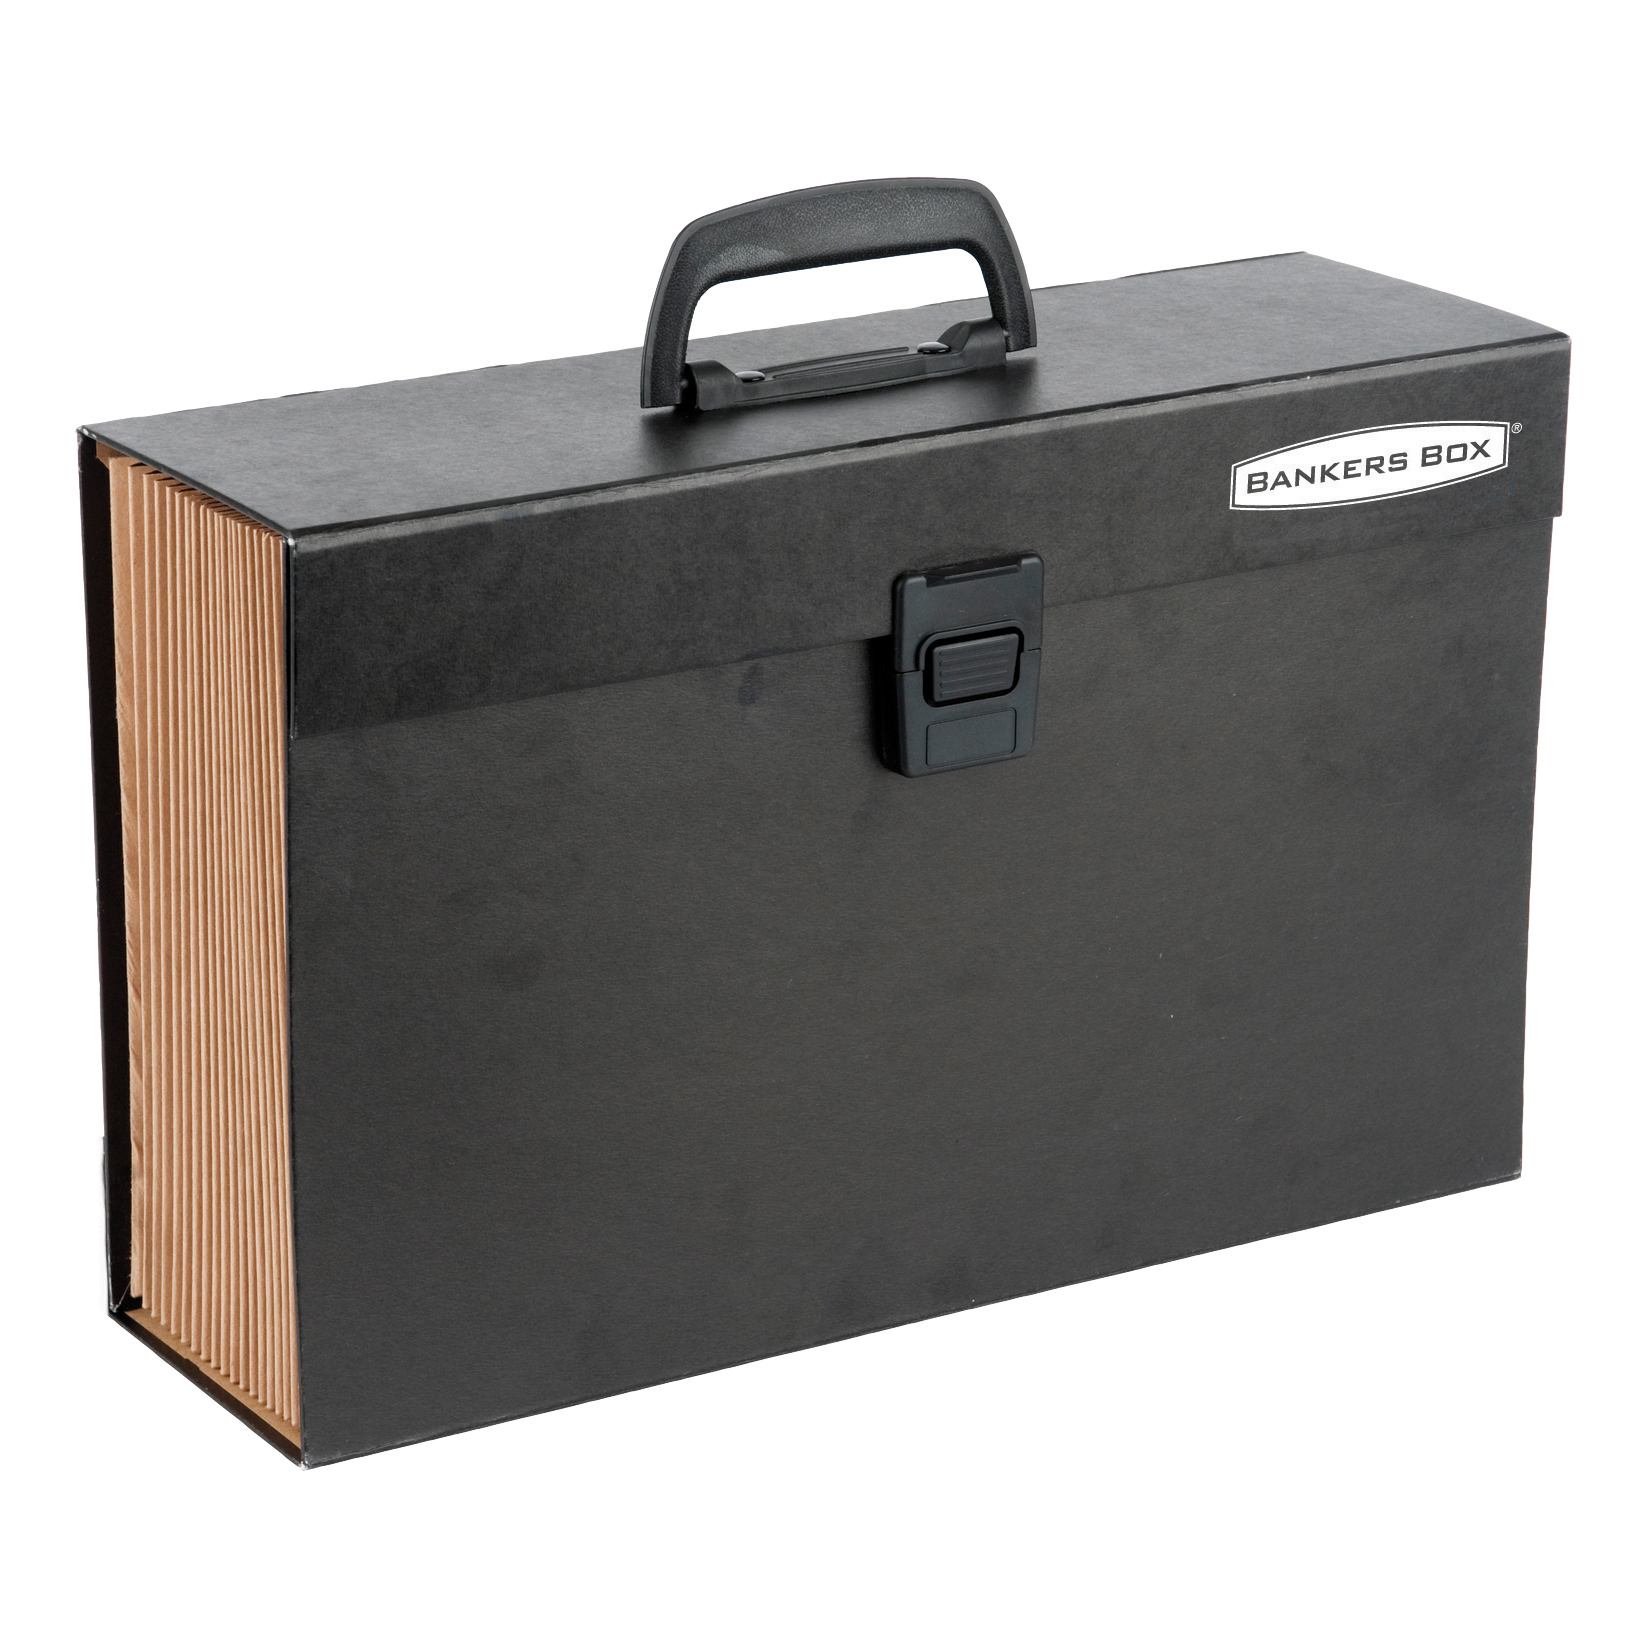 Expanding Files Bankers Box by Fellowes Handifile Expanding Organiser Briefcase Black Ref 9351501